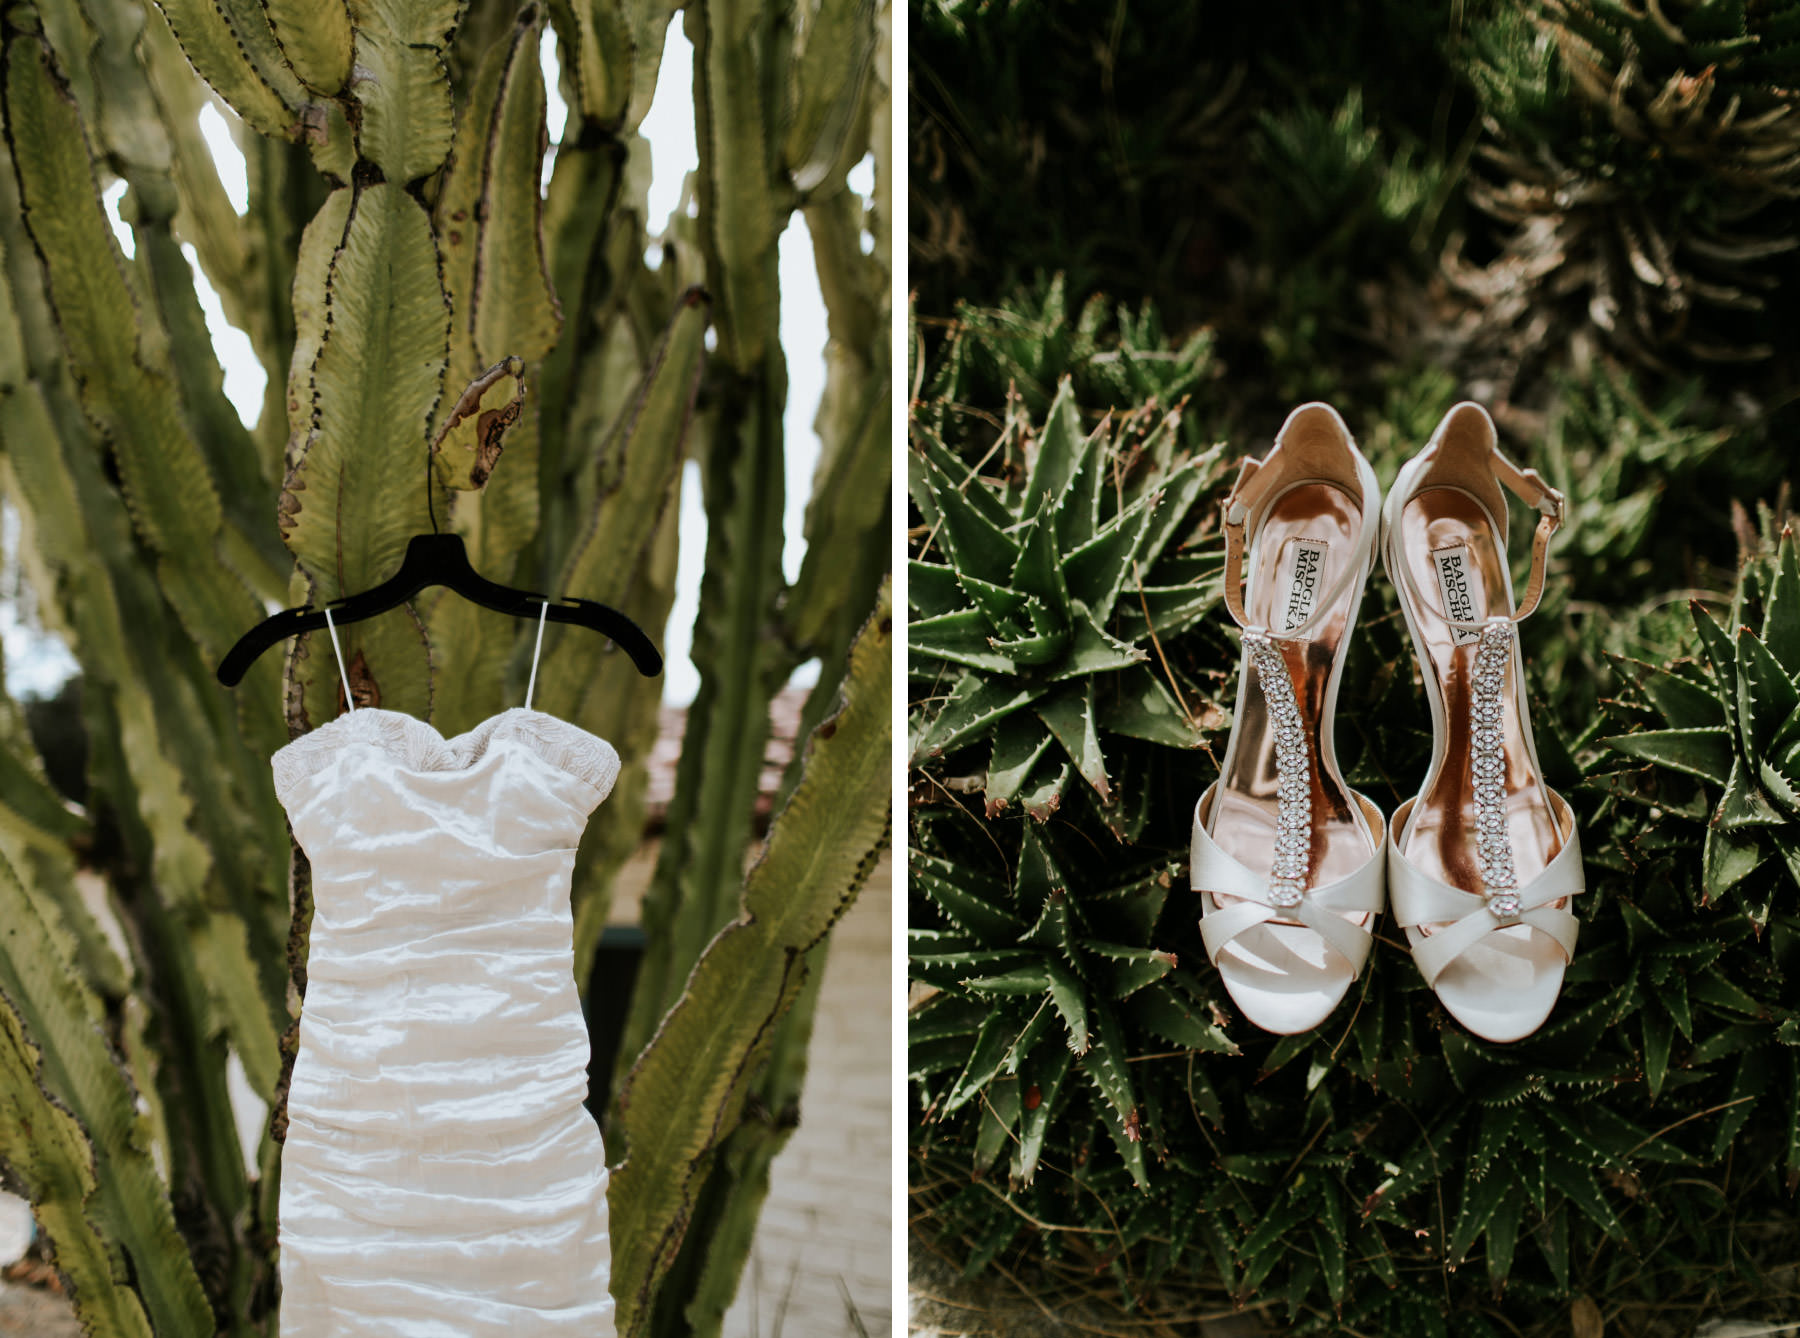 Wedding dress and shoes hanging from cactus at Leo Carrillo Ranch